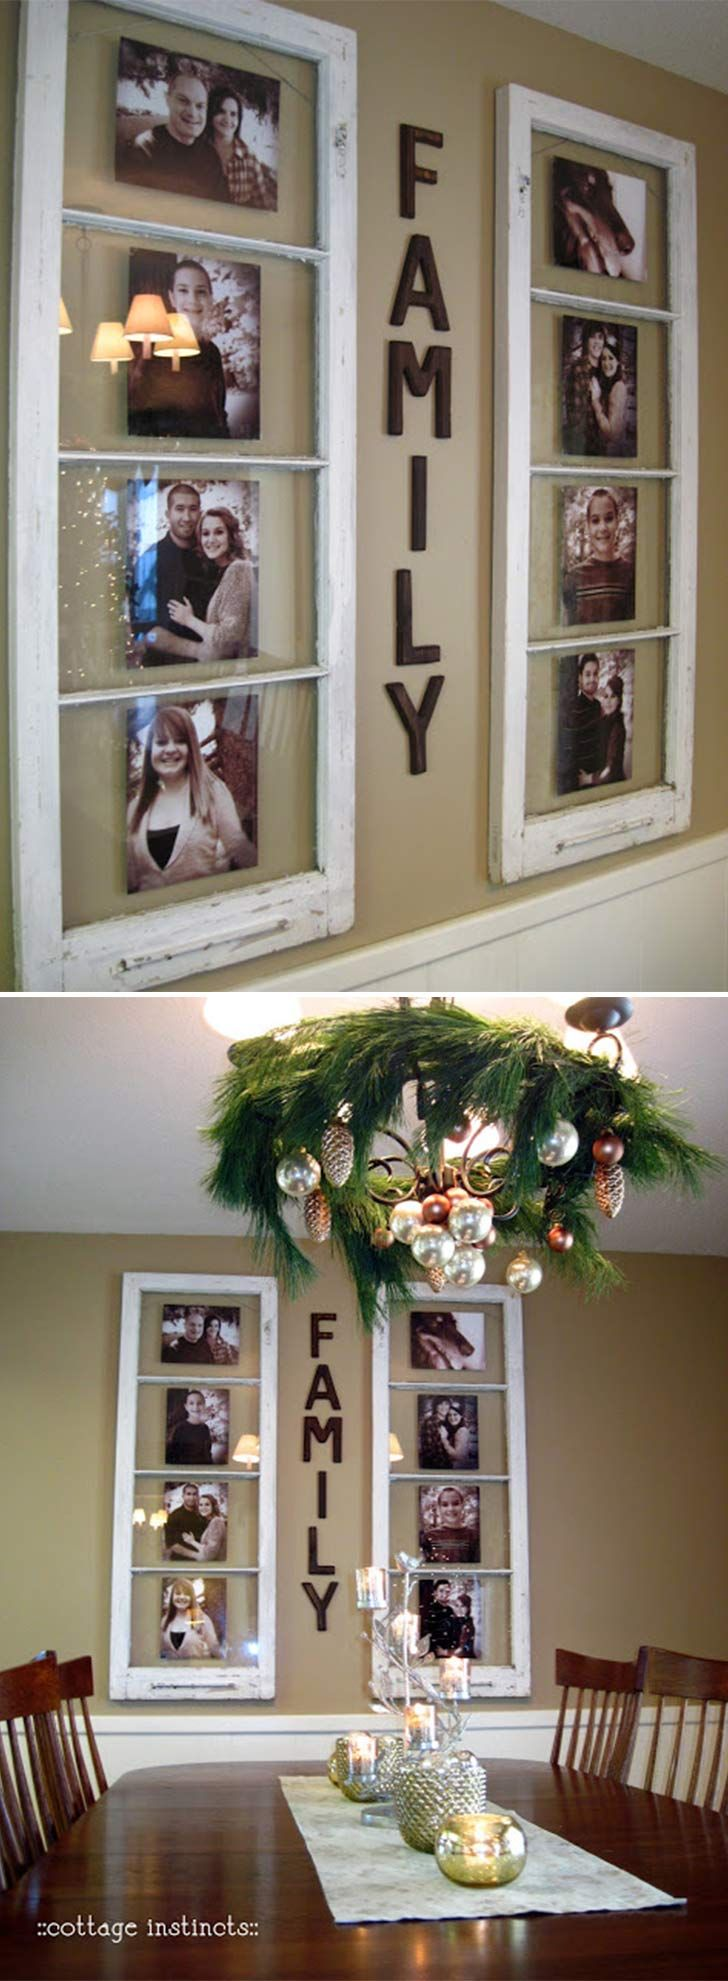 Click On Image To See More Home Decor Ideas And Diy